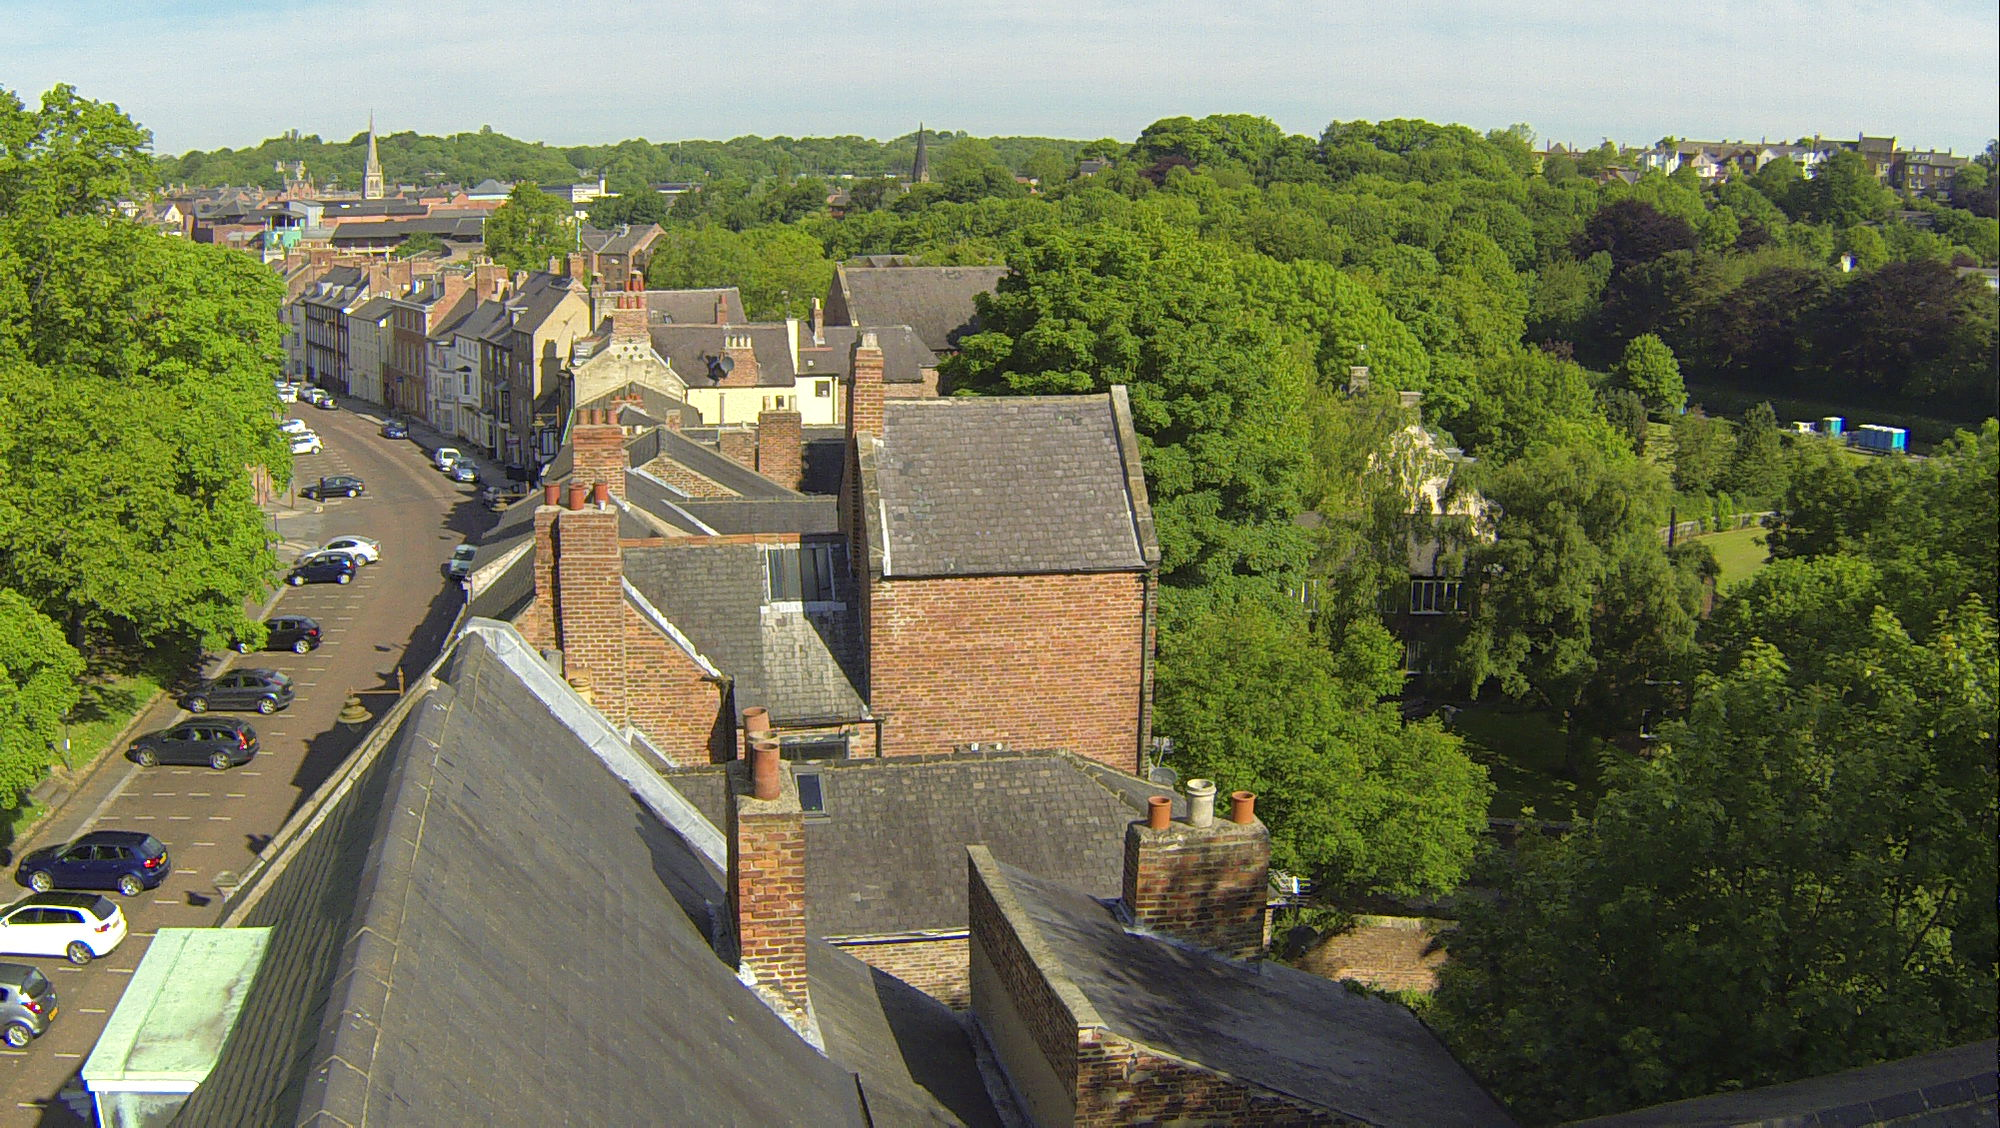 Aerial view of rooftops and chimneys - Survey Drones